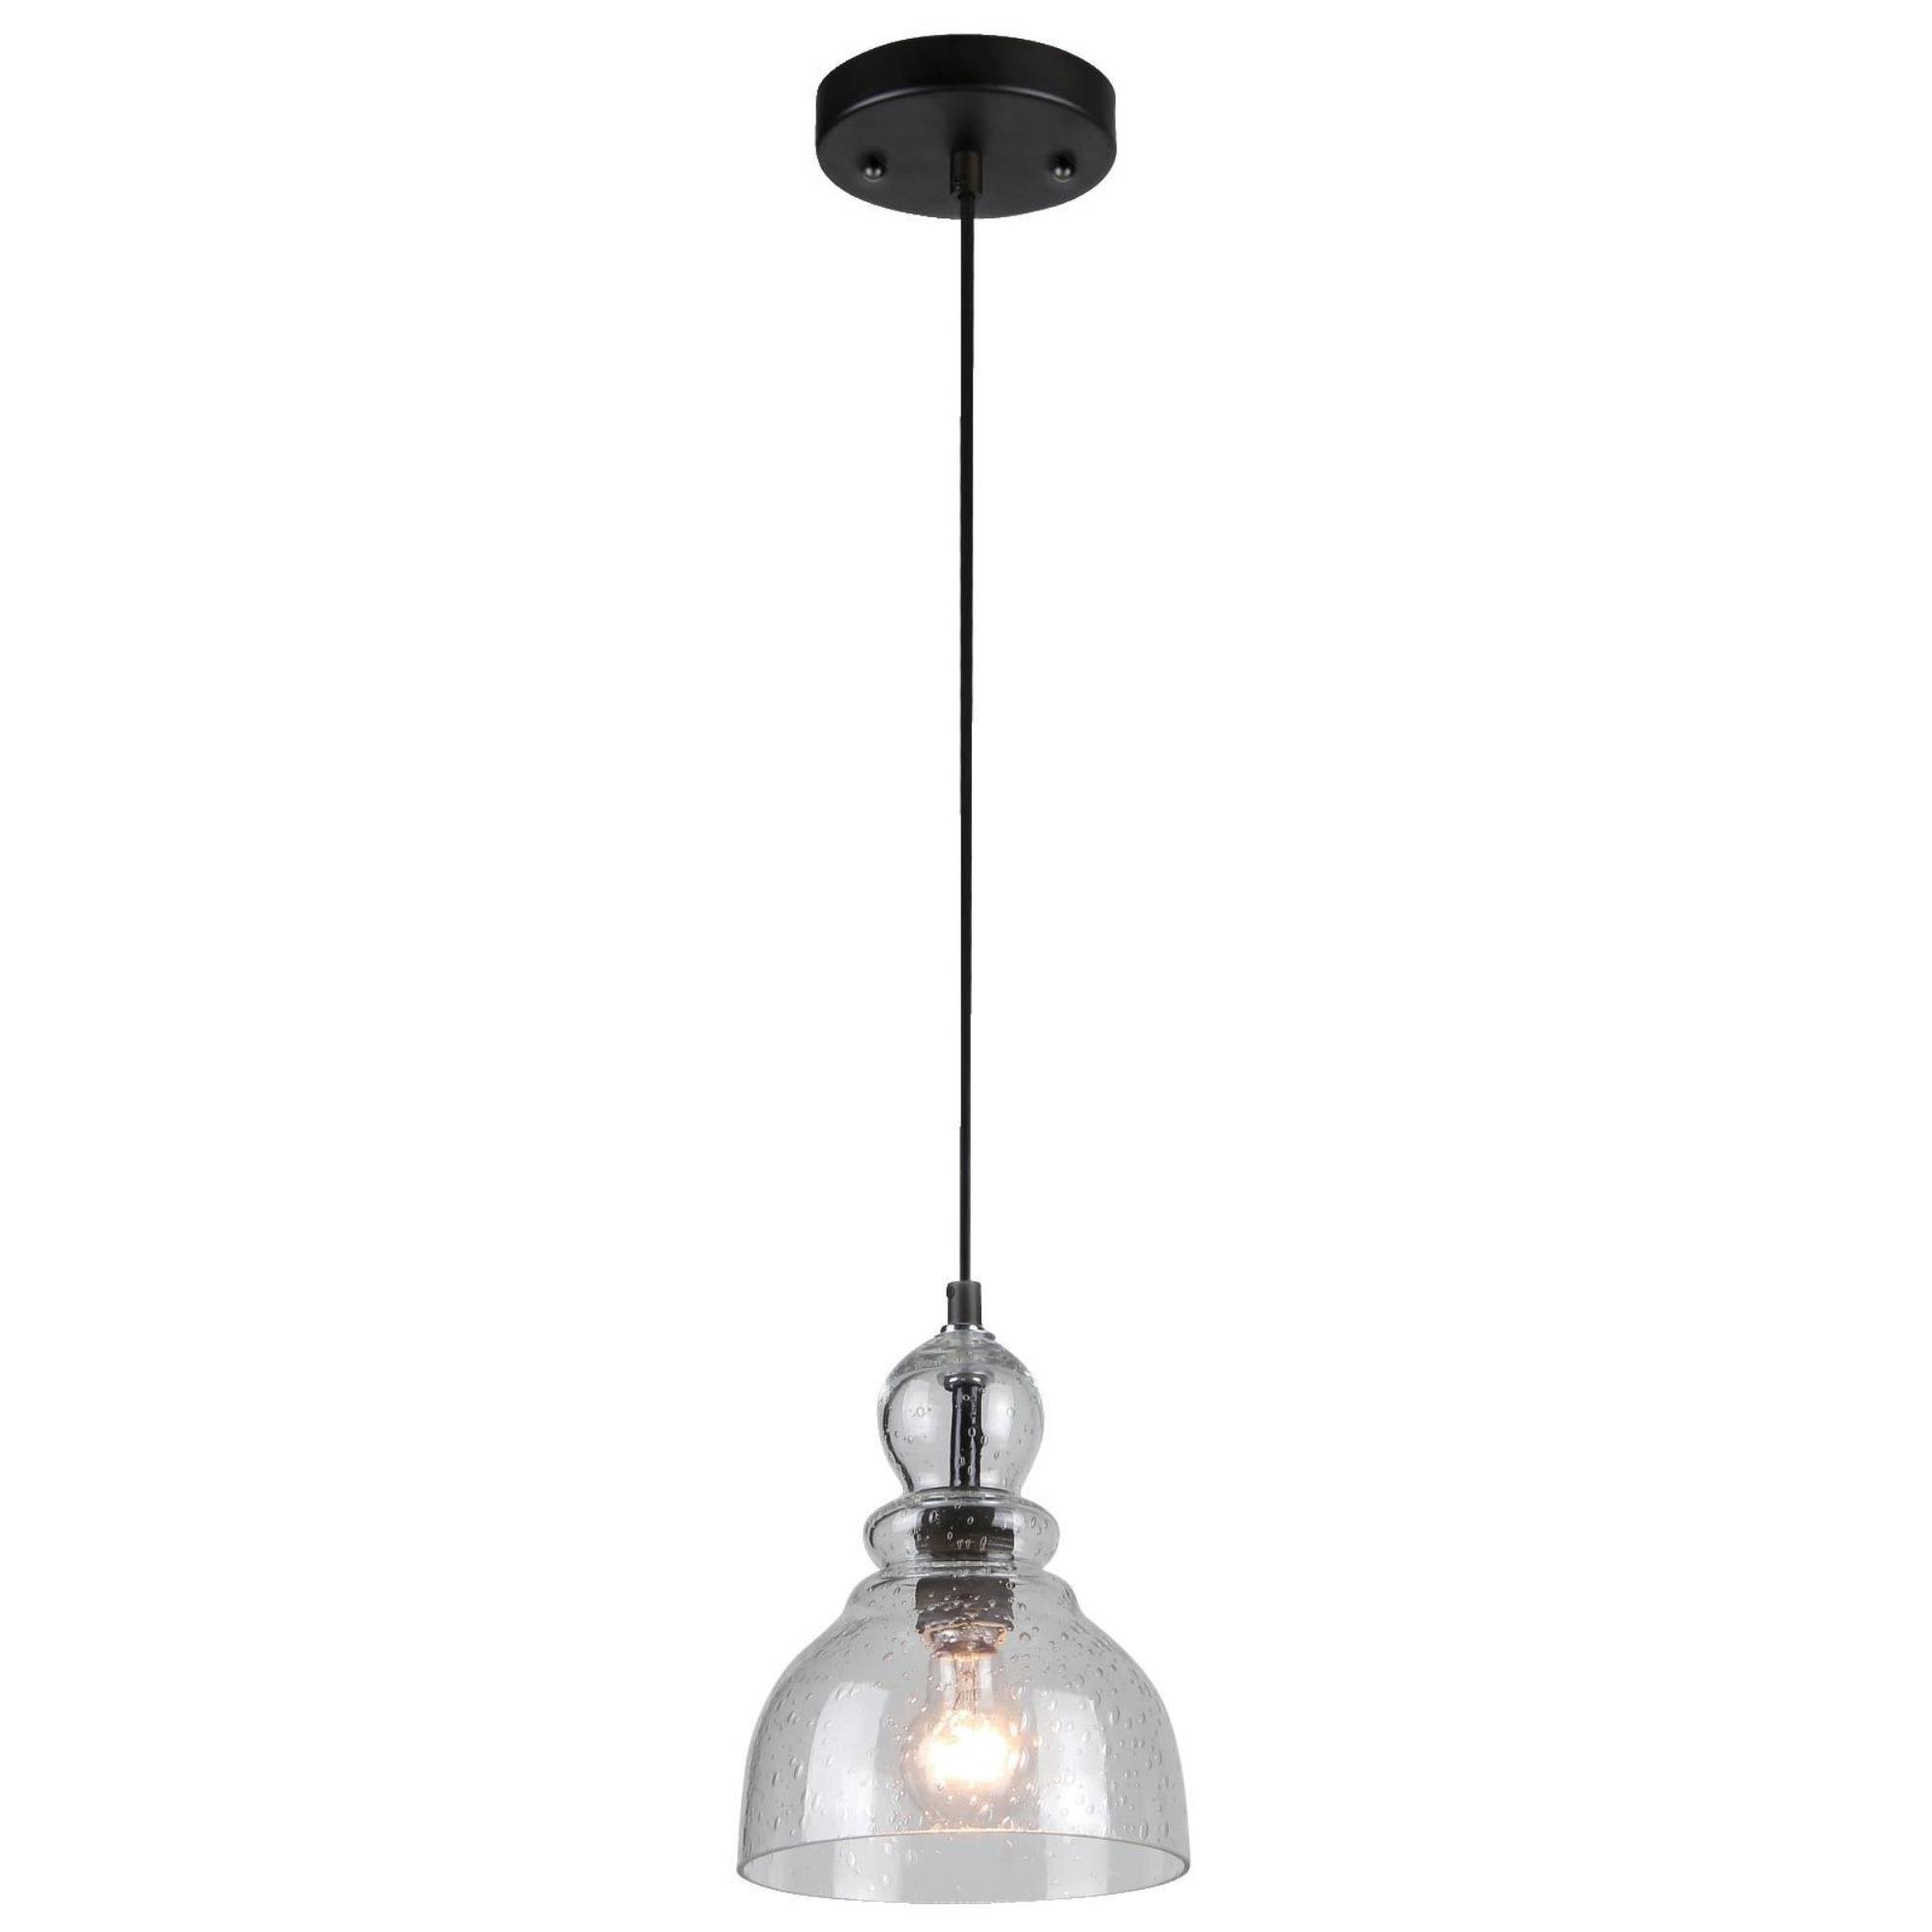 Kitchen Mini Pendant Lights Amazoncom - Kitchen pendant lighting amazon